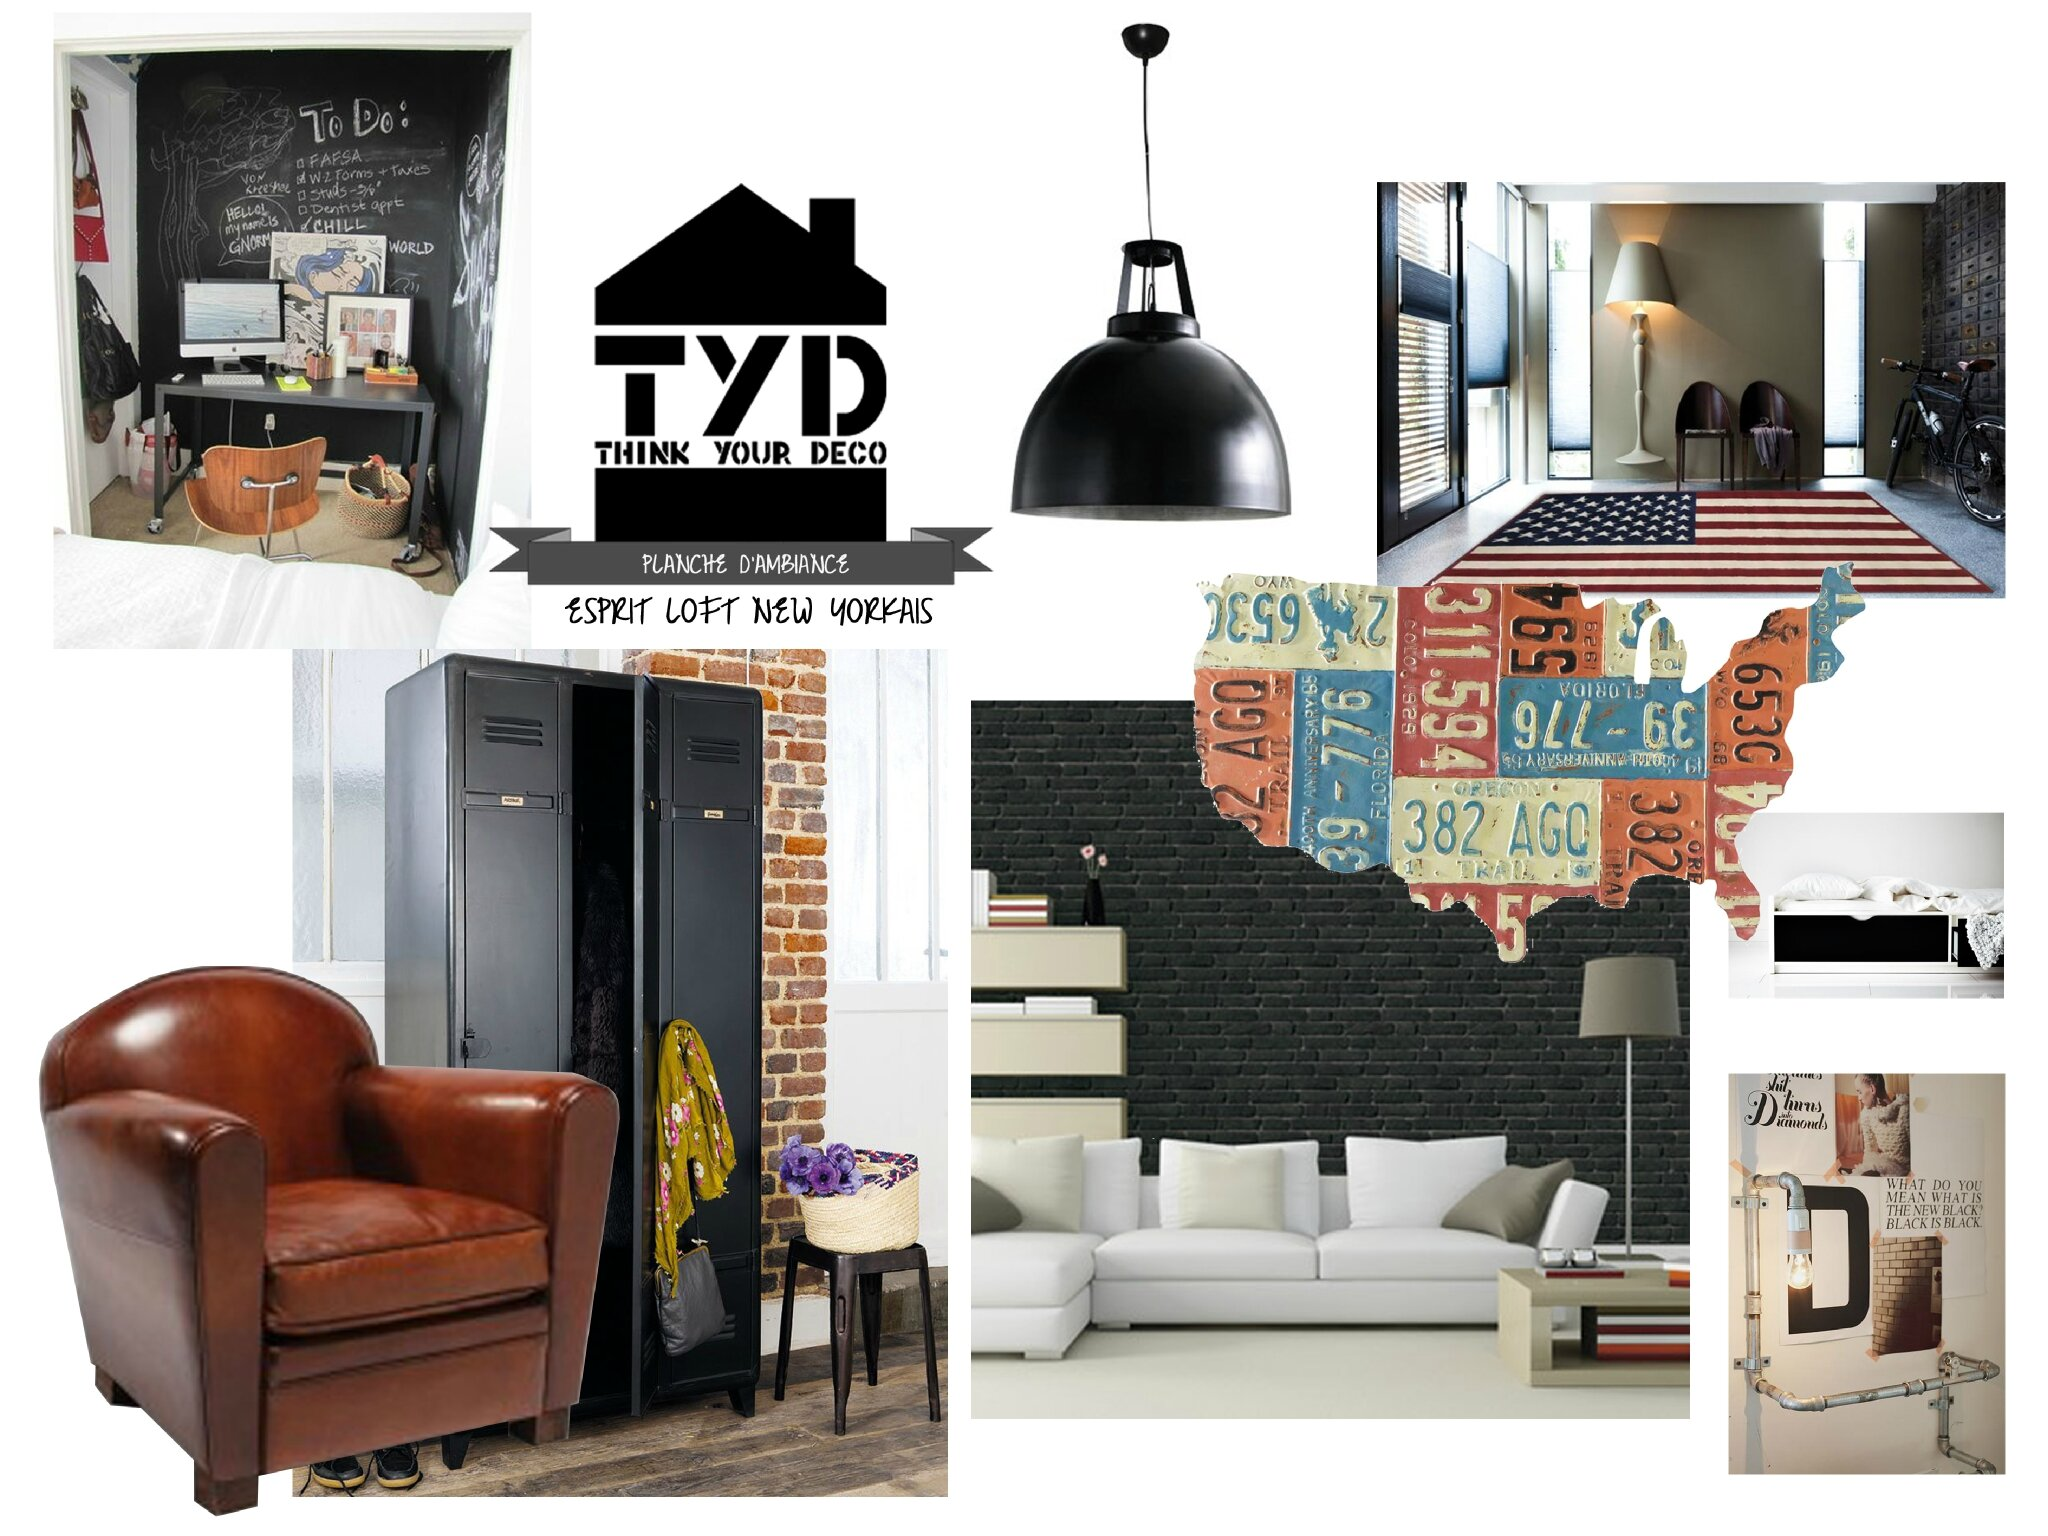 chambre style loft new yorkais. Black Bedroom Furniture Sets. Home Design Ideas